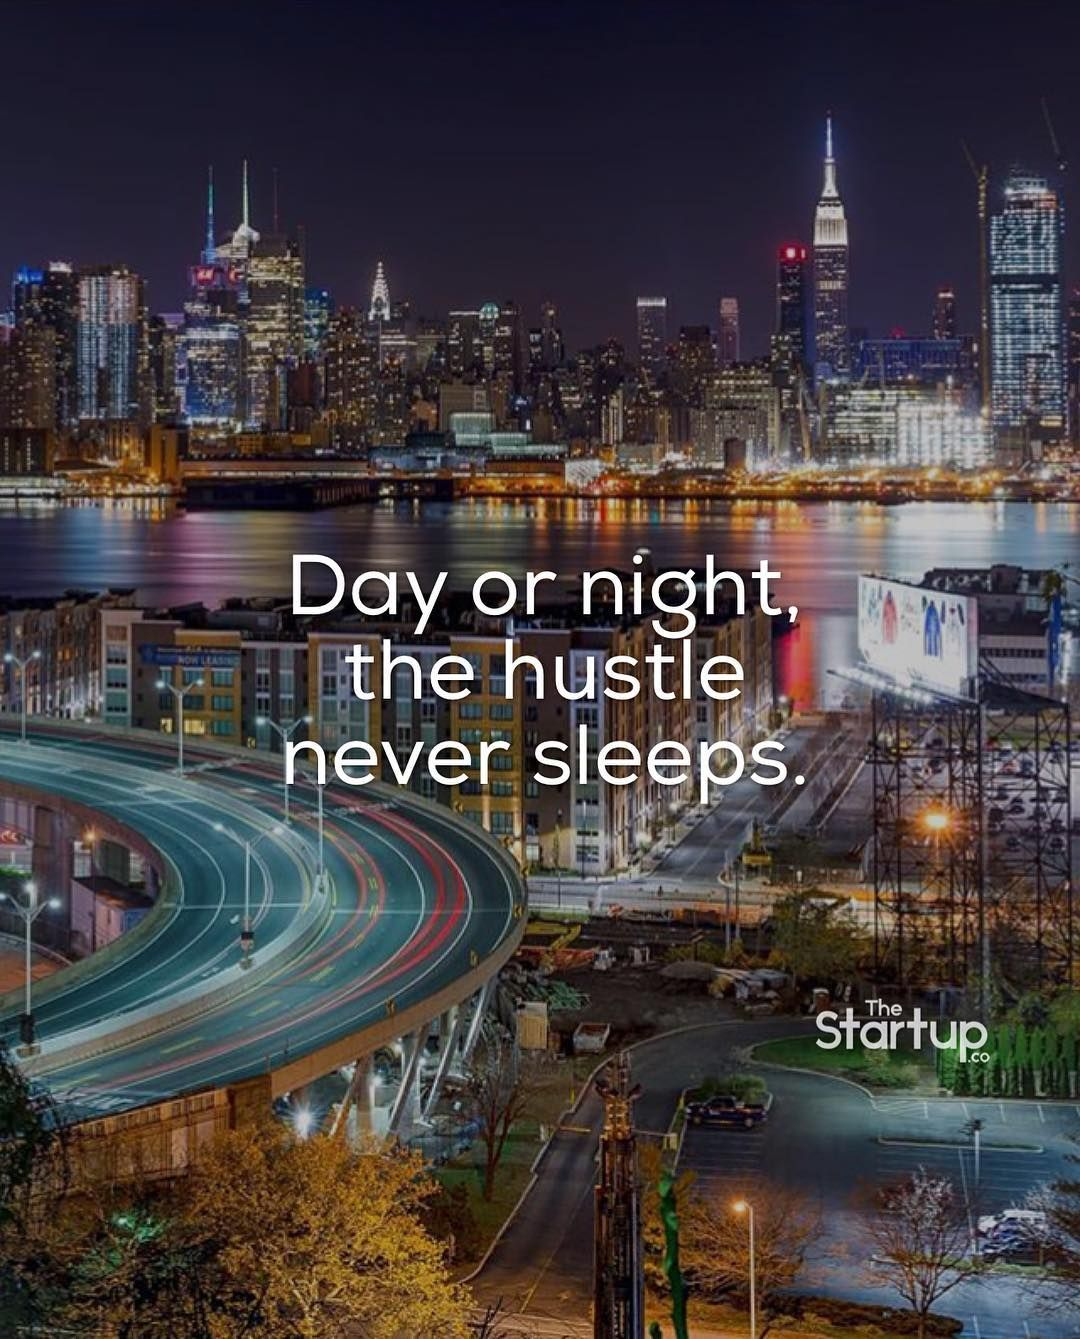 Inspired Daily Thestartupco On Instagram Tag Someone Who Hustles Day And Night Thestartupco Chief770 Night Instagram Posts Day